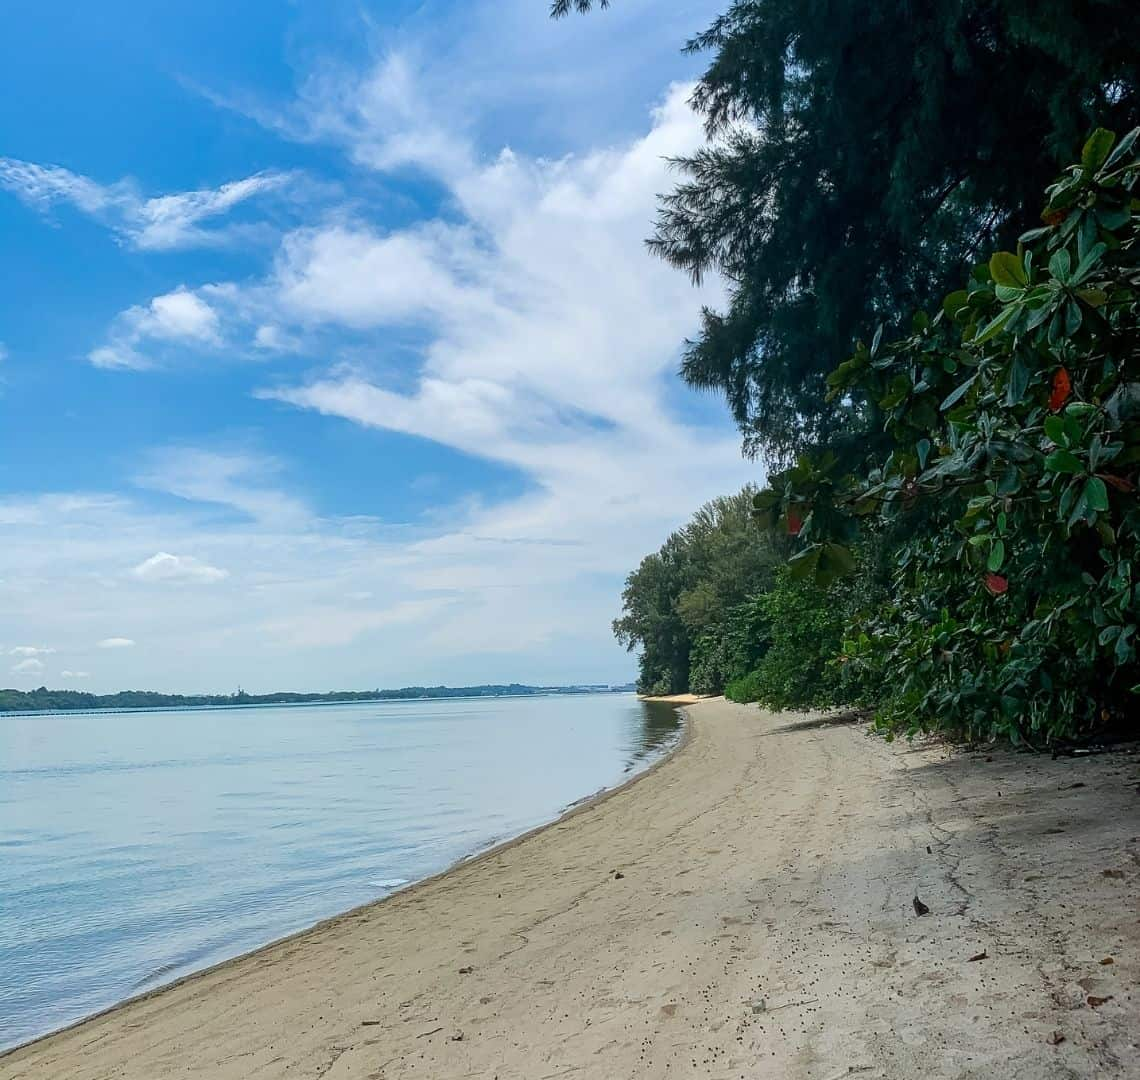 The yellow sand stretches from the bottom of the image, all the way up the right hand side and into the distance. There is green vegetation growing near the shoreline. On the left there is very still blue water, more vegetation (Pulau Ubin) on the horizon and a blue sky with lots of wispy white clouds